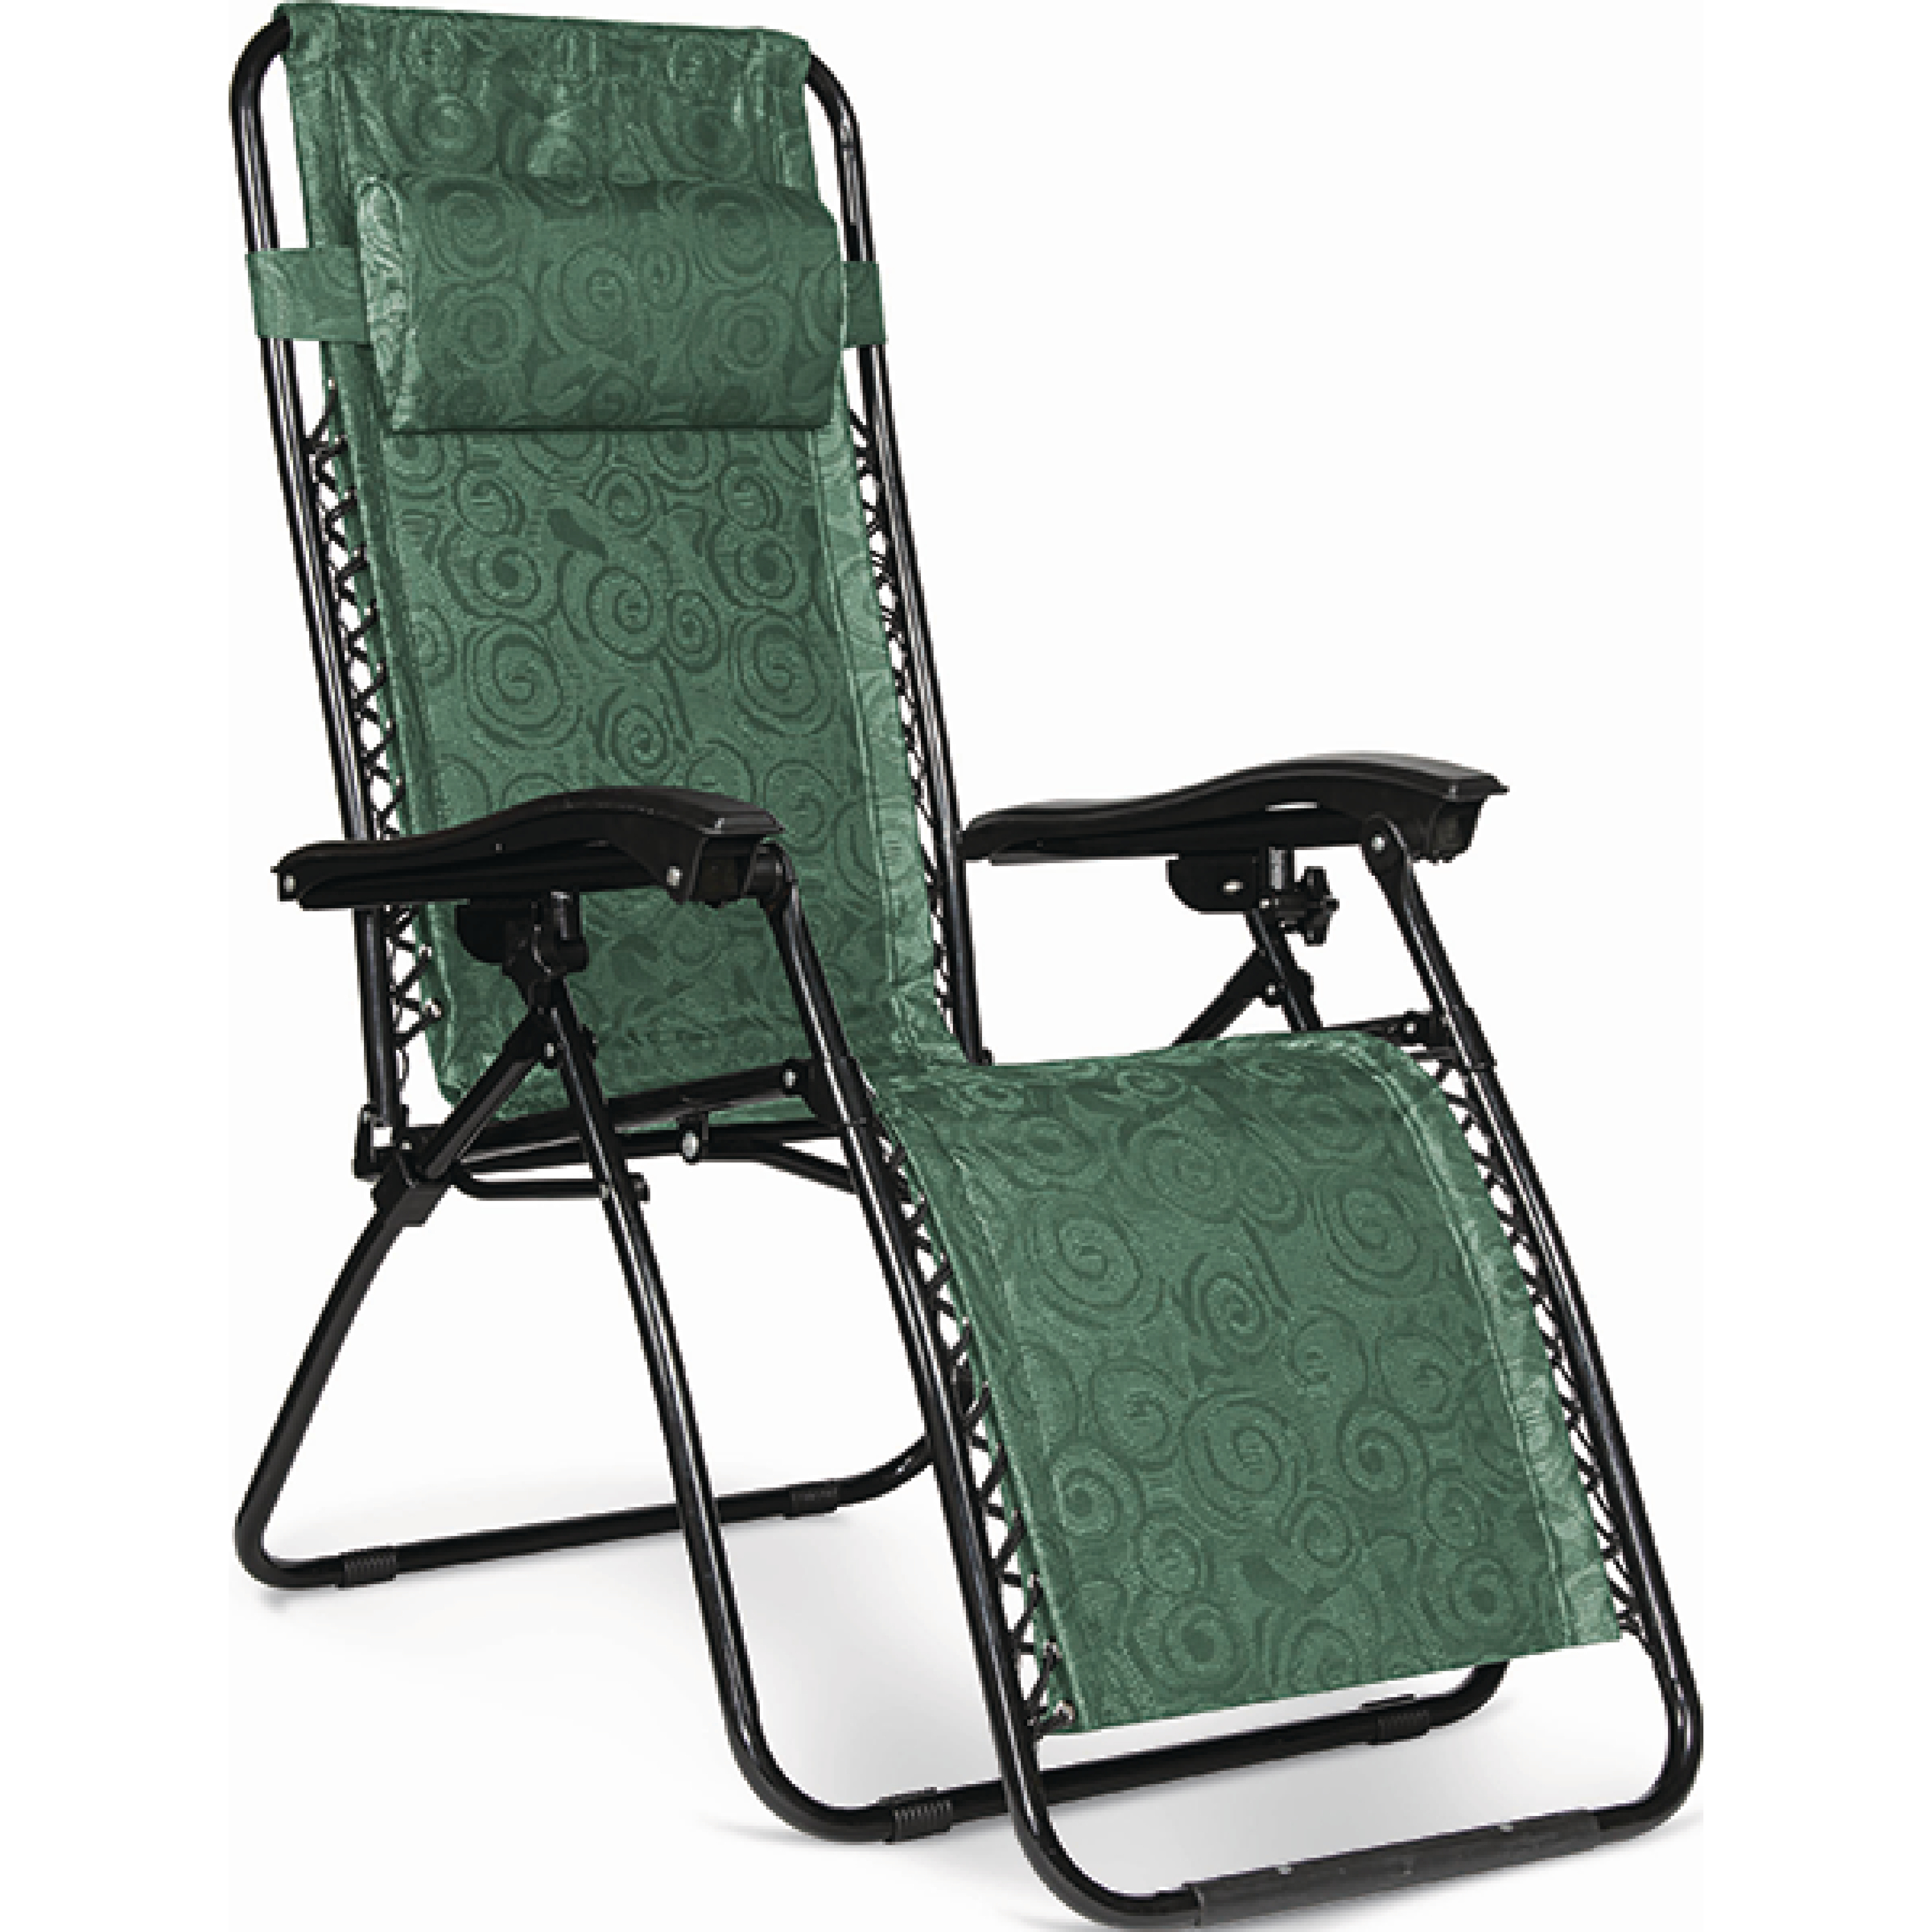 Open Air 51811 Green Zero Gravity RV Camping Non Padded Recliner Chair